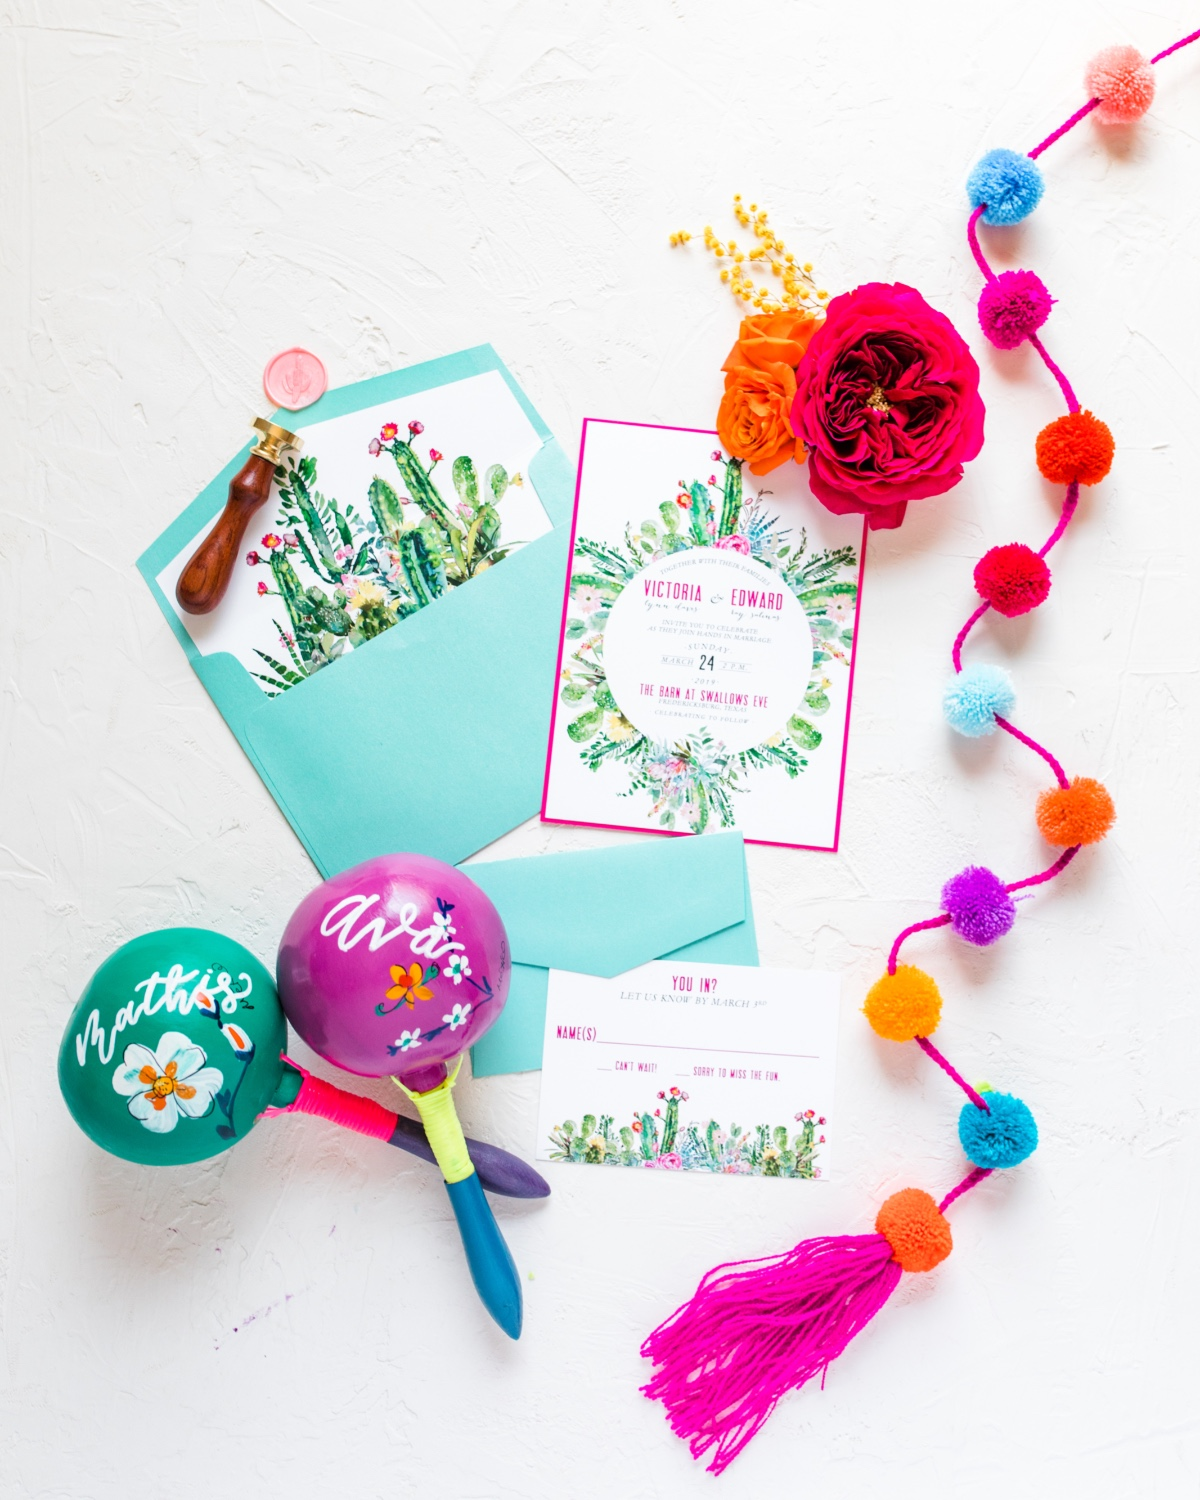 Vibrant Fiesta Themed Wedding Ideas At A Texas Wedding Venue